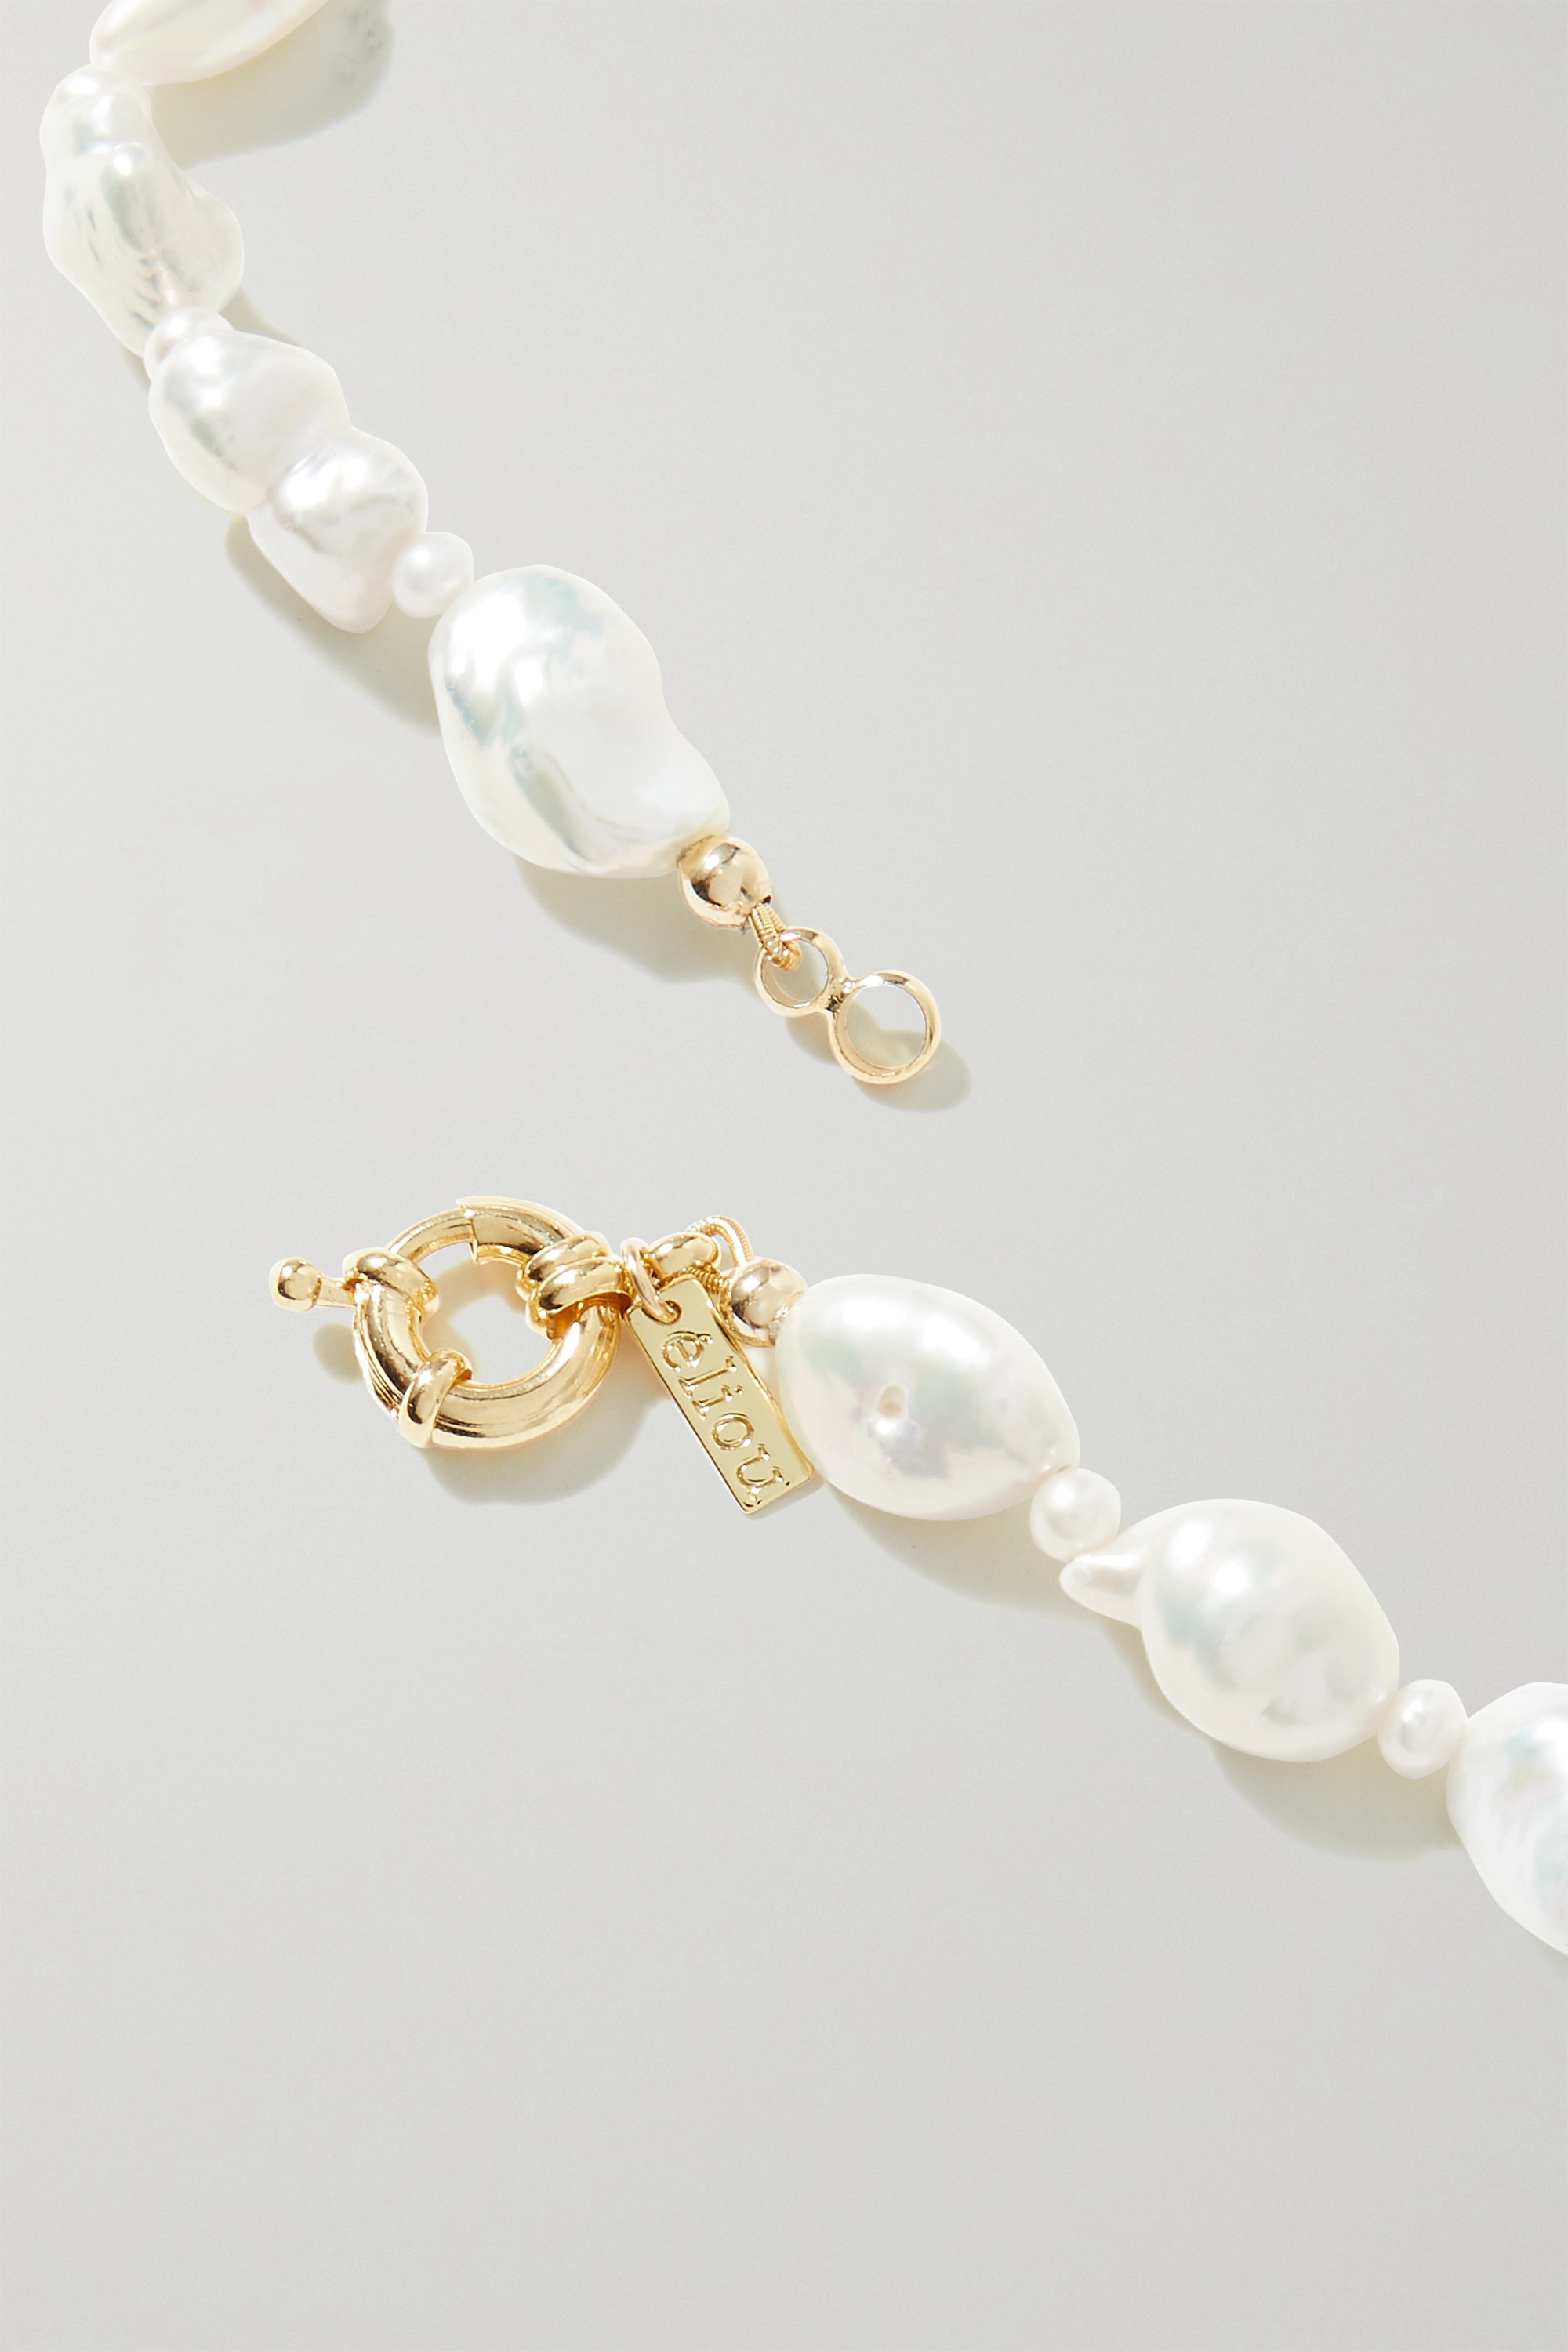 éliou All The Feels gold-plated, pearl and bead necklace